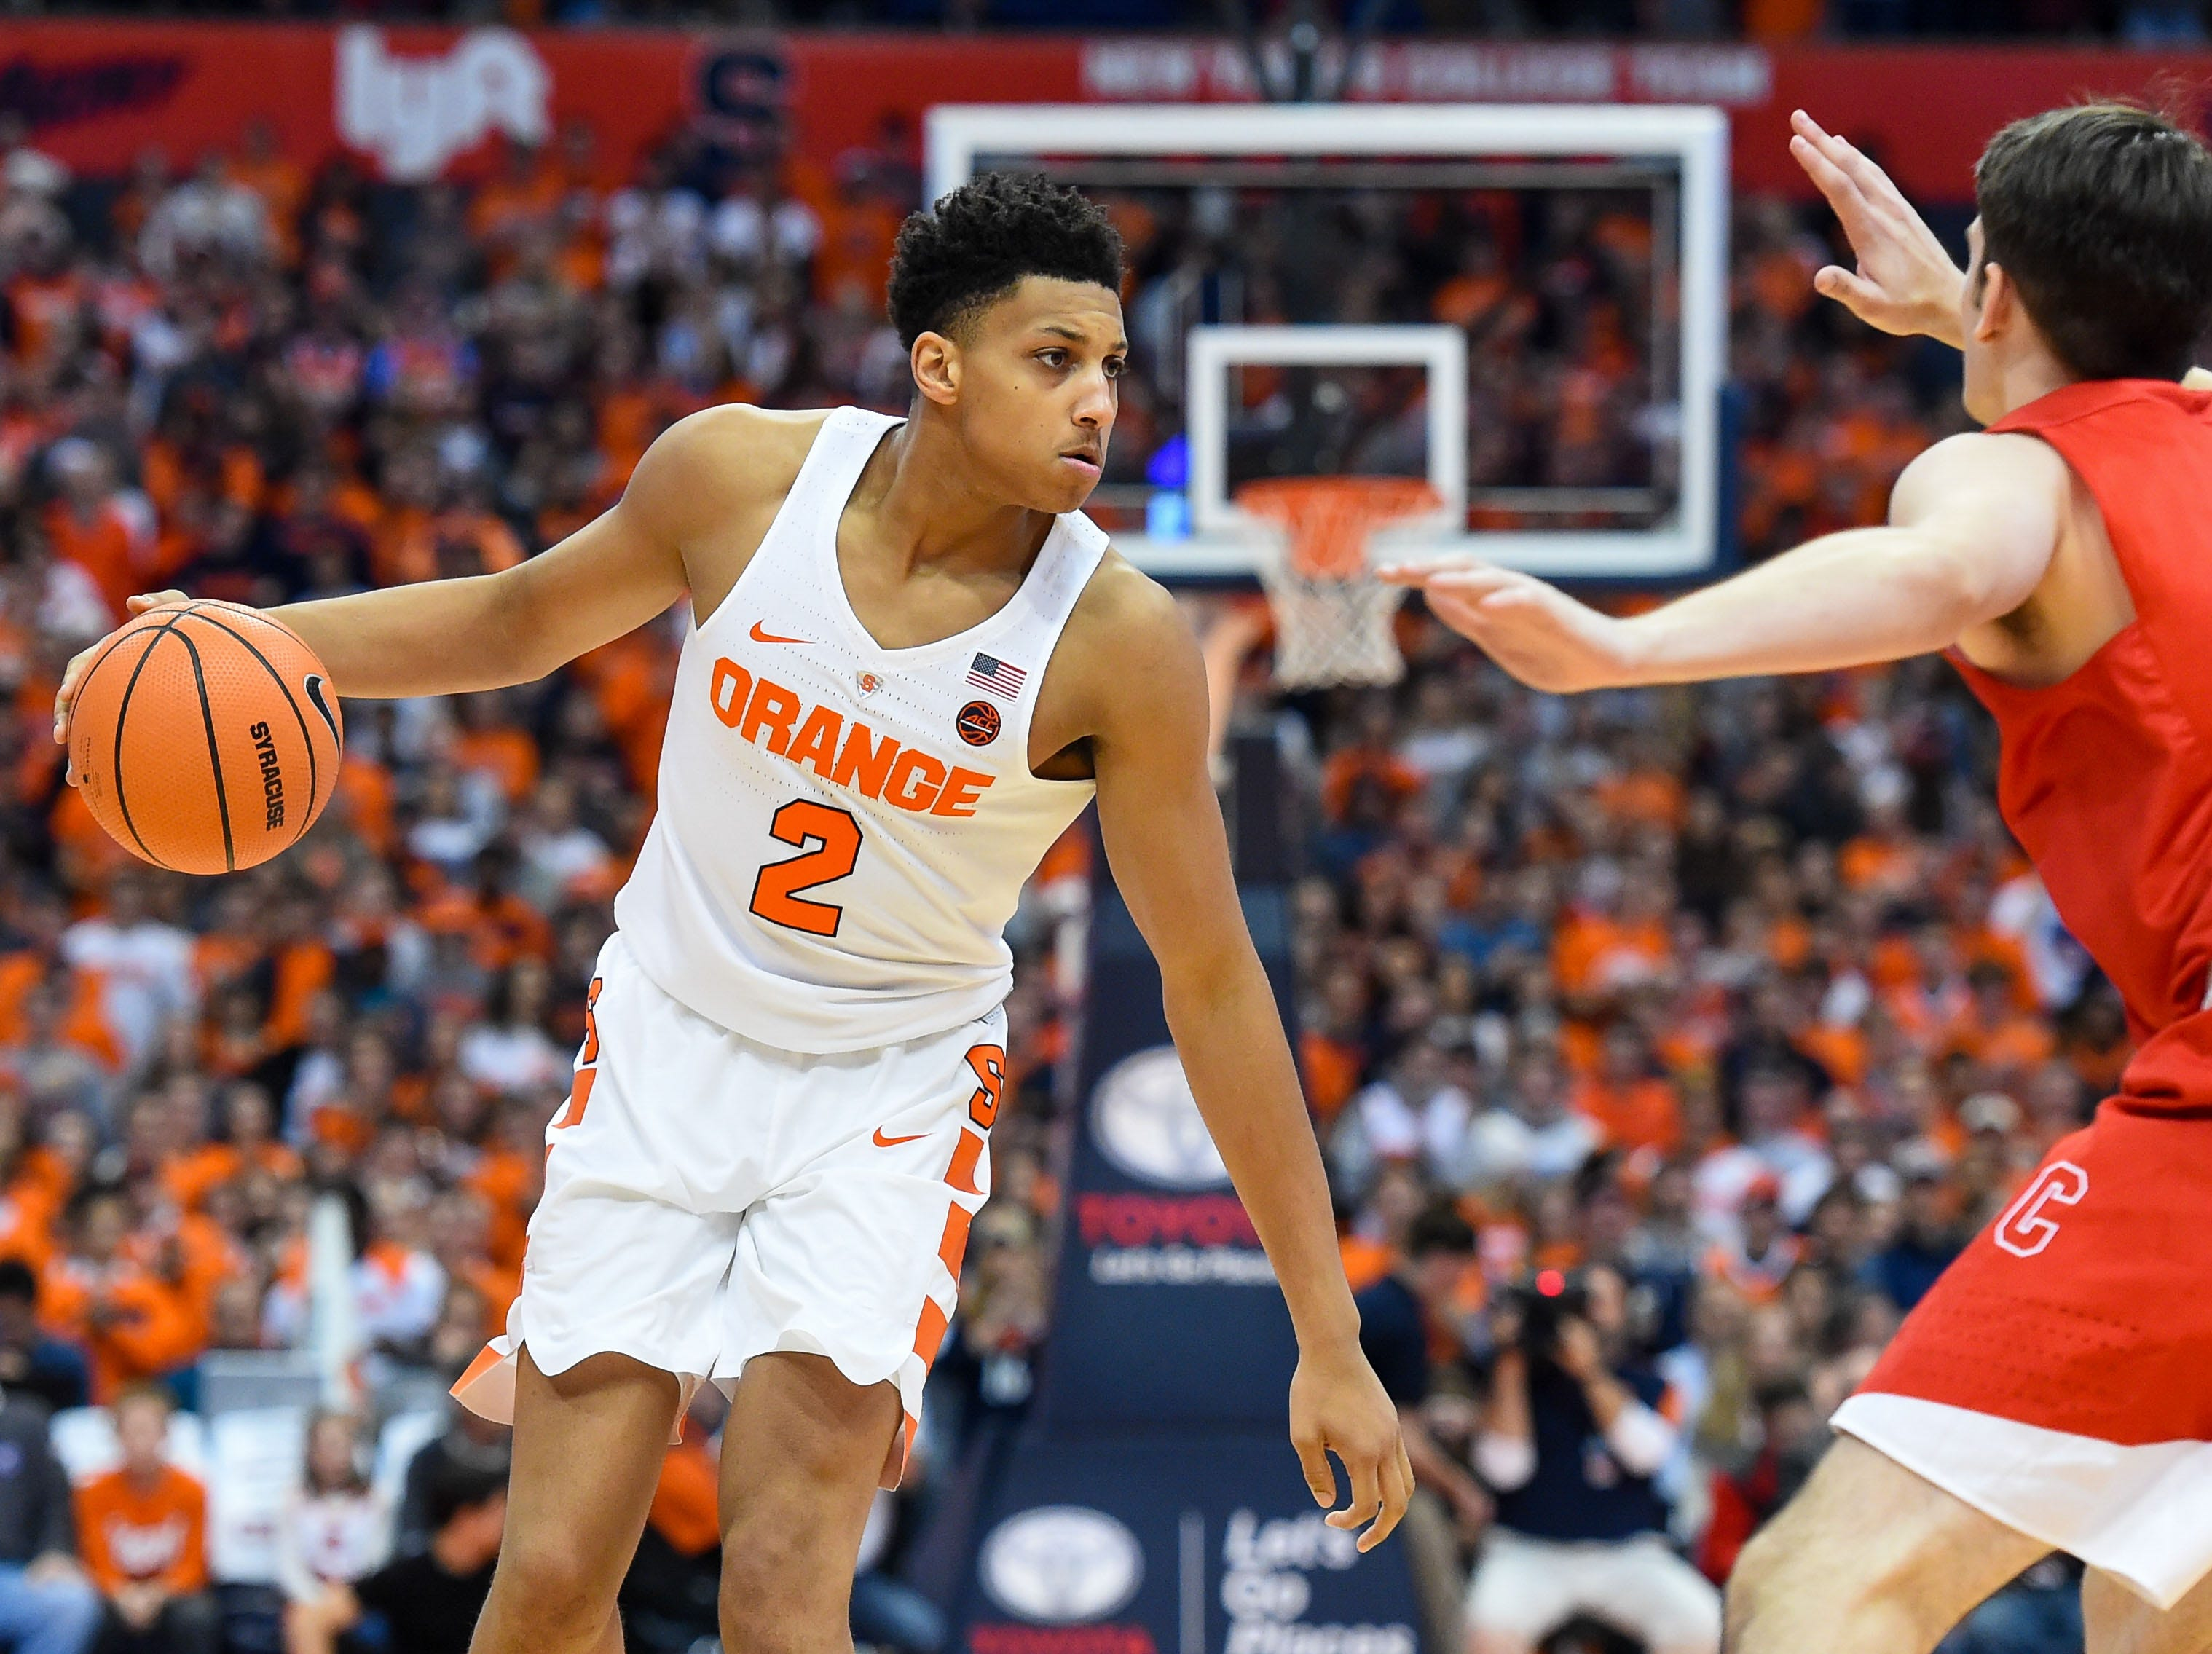 Nov 10, 2017; Syracuse, NY, USA; Syracuse Orange forward Matthew Moyer (2) controls the ball as Cornell Big Red forward Jimmy Boeheim (3) defends during the first half at the Carrier Dome. Mandatory Credit: Rich Barnes-USA TODAY Sports